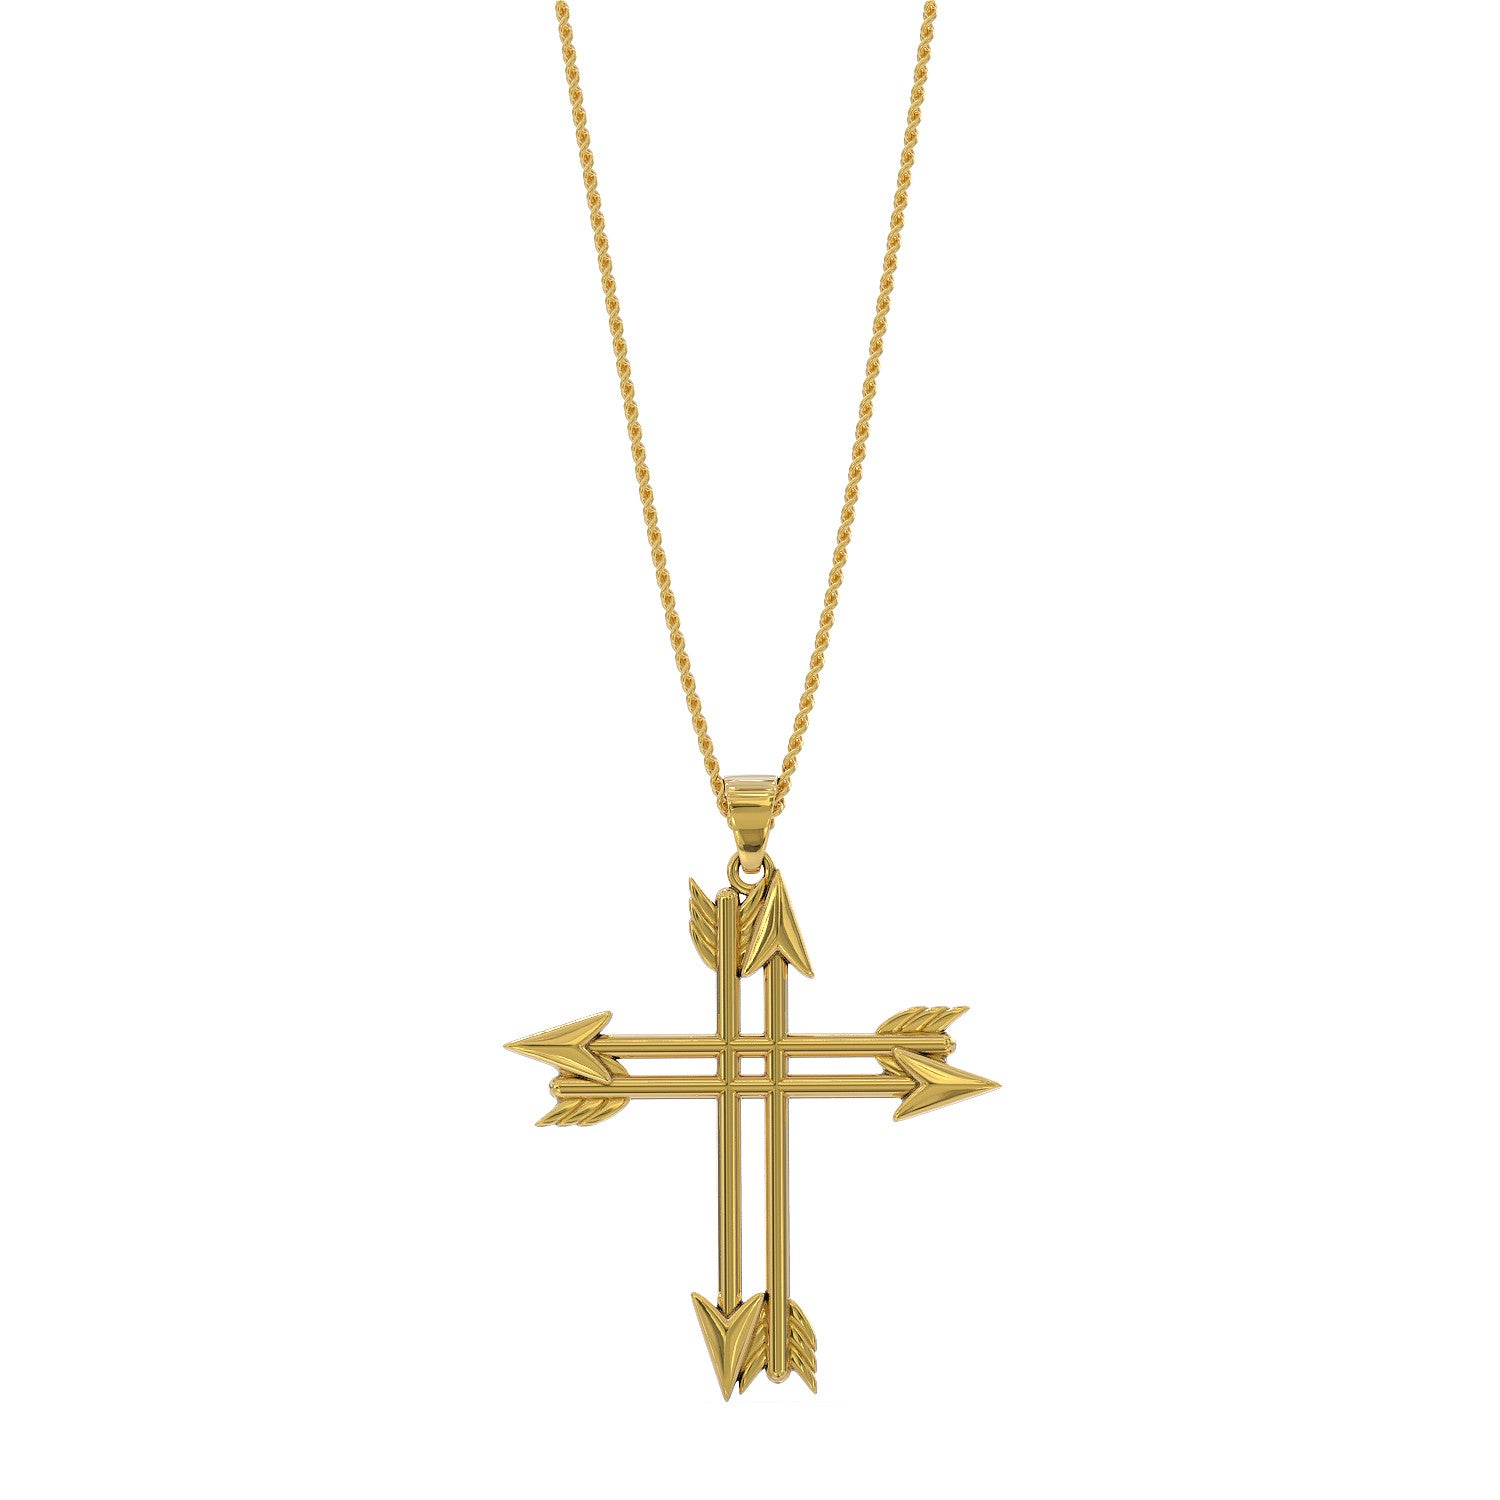 Bowhunter's Cross Necklace - STRICTLY LIMITED EDITION